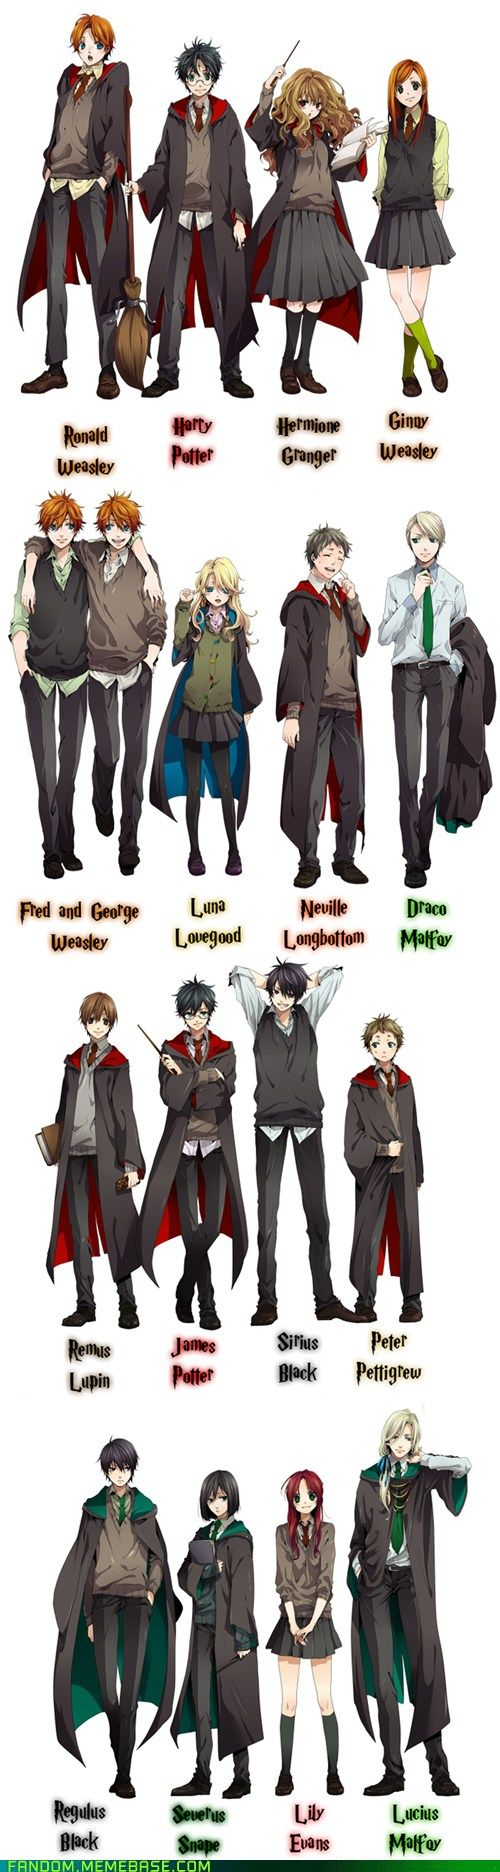 Harry Potter Anime... in my fan-girl dreams!